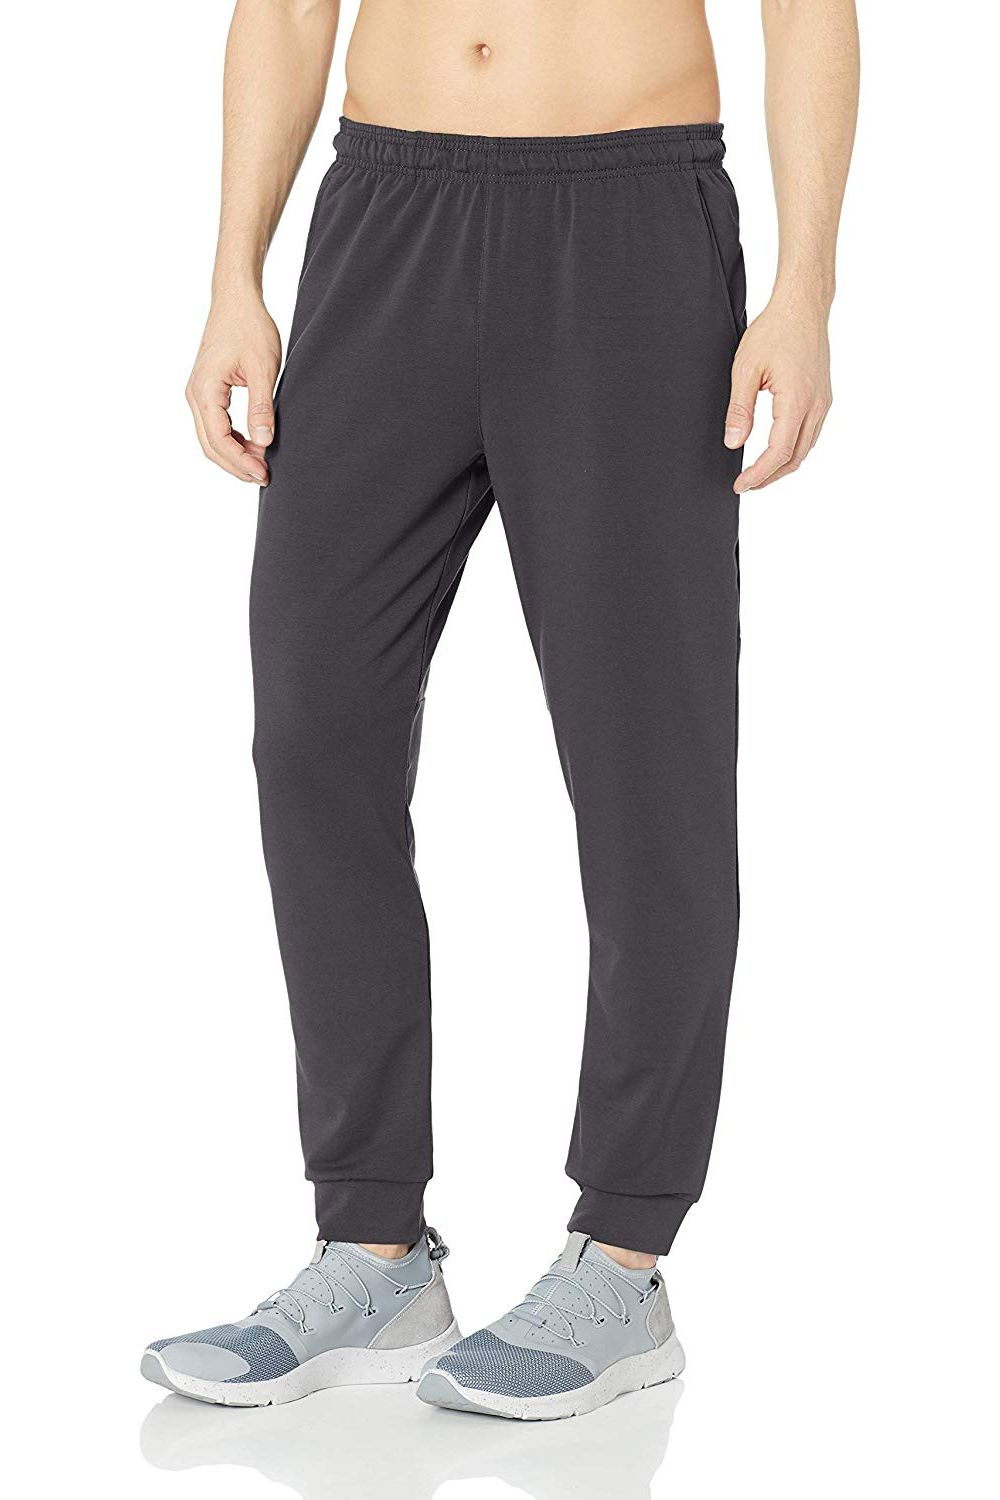 Amazon Essentials Men's Soft-Tech Training Jogger Pant